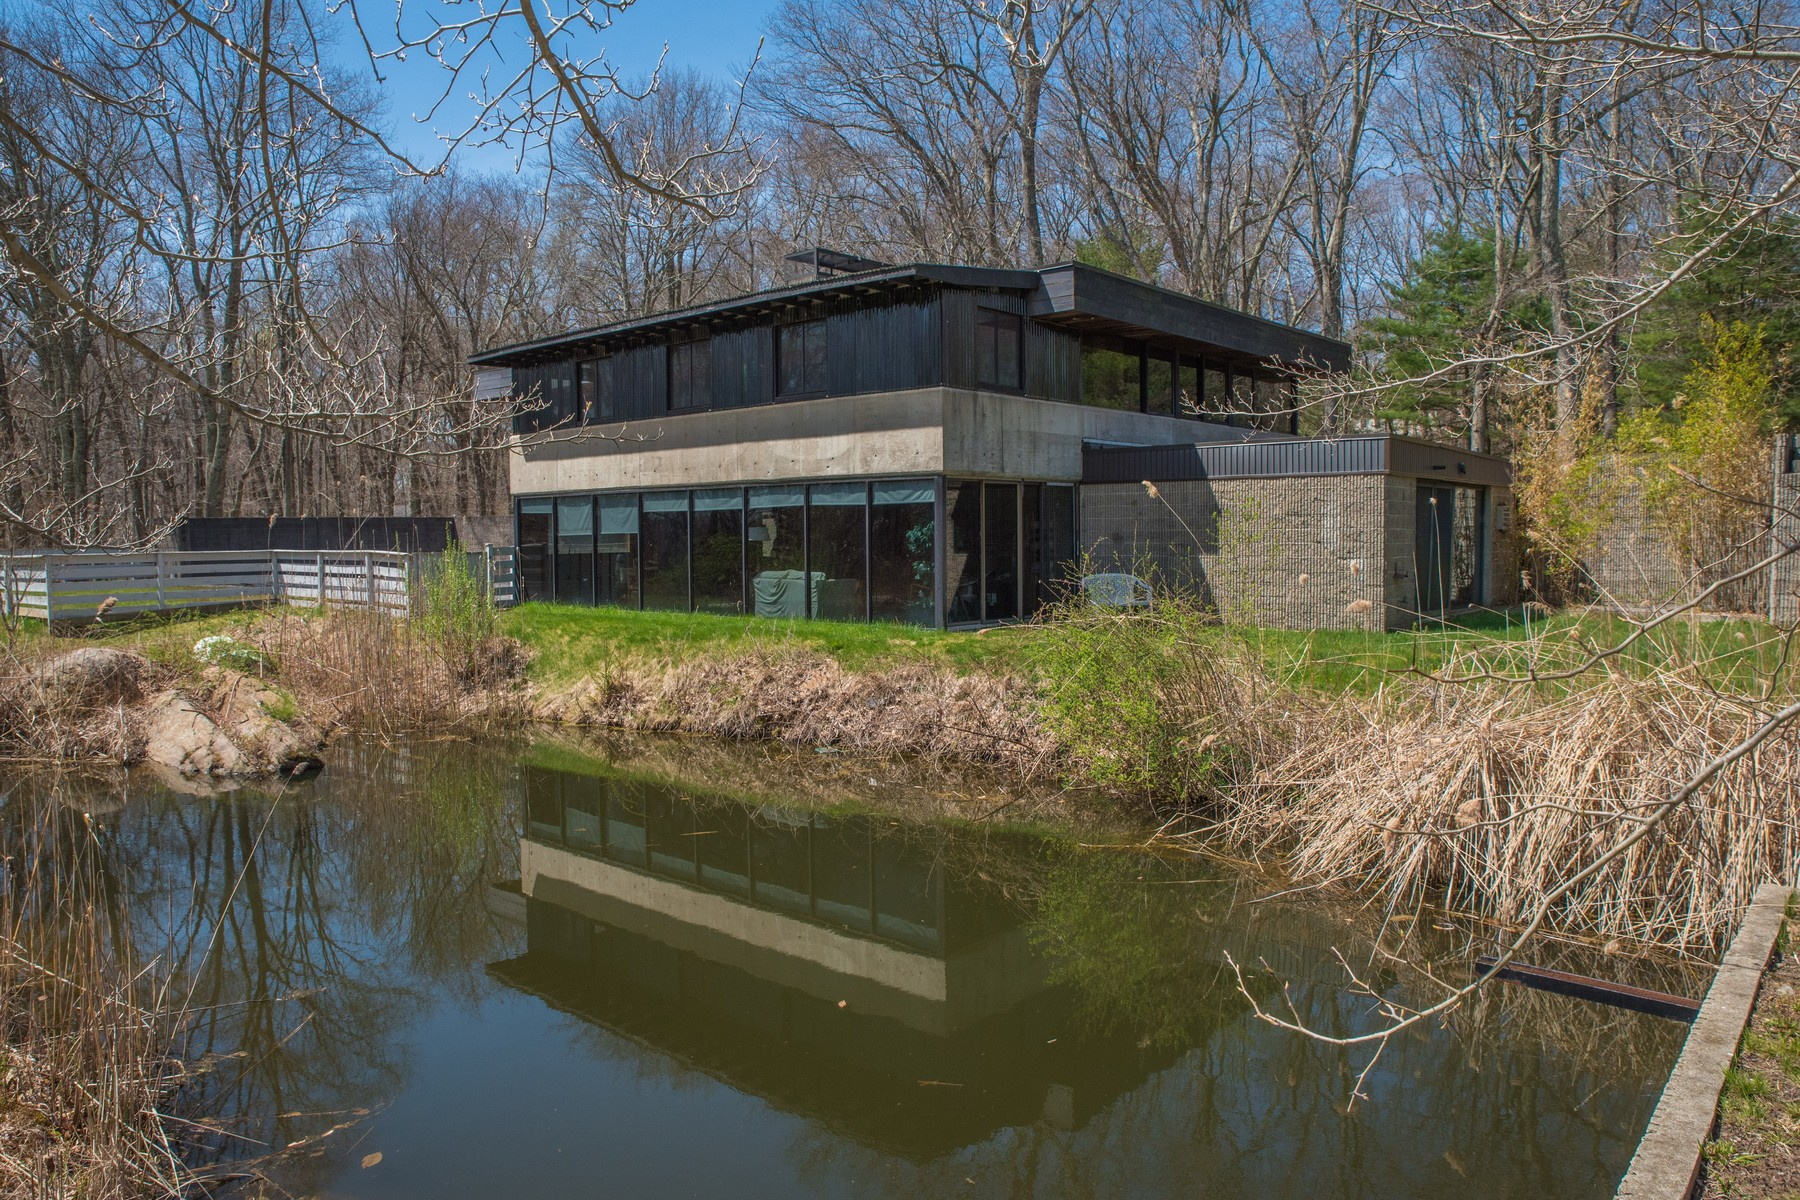 Частный односемейный дом для того Продажа на Unique contemporary listed on the Connecticut Landmark homes list 3 Bill Hill Rd #b Old Lyme, Коннектикут 06371 Соединенные Штаты